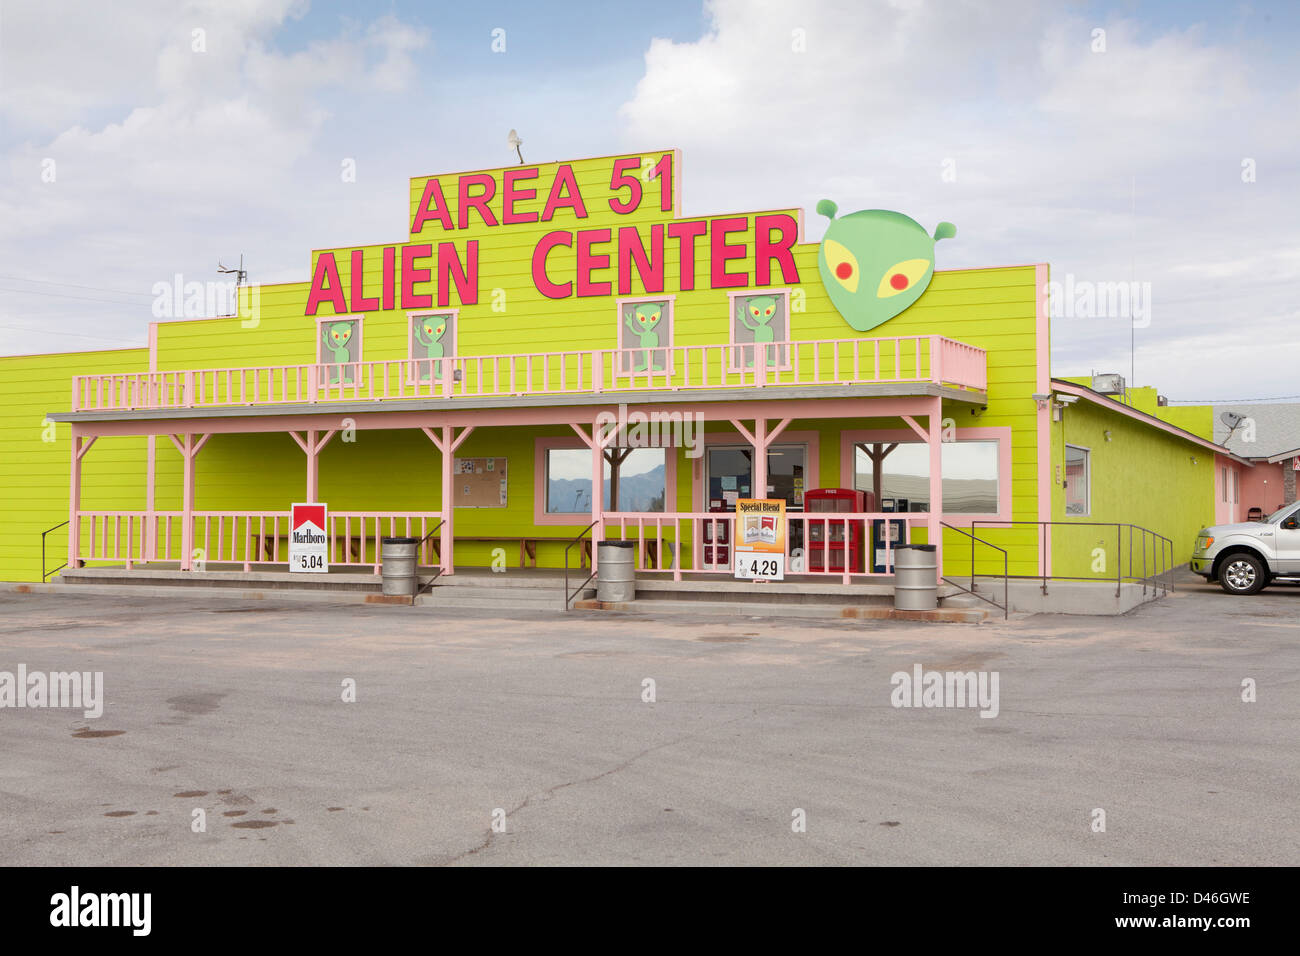 Area 51 alien center in nevada usa stock photo 54234698 for Area 51 progetti